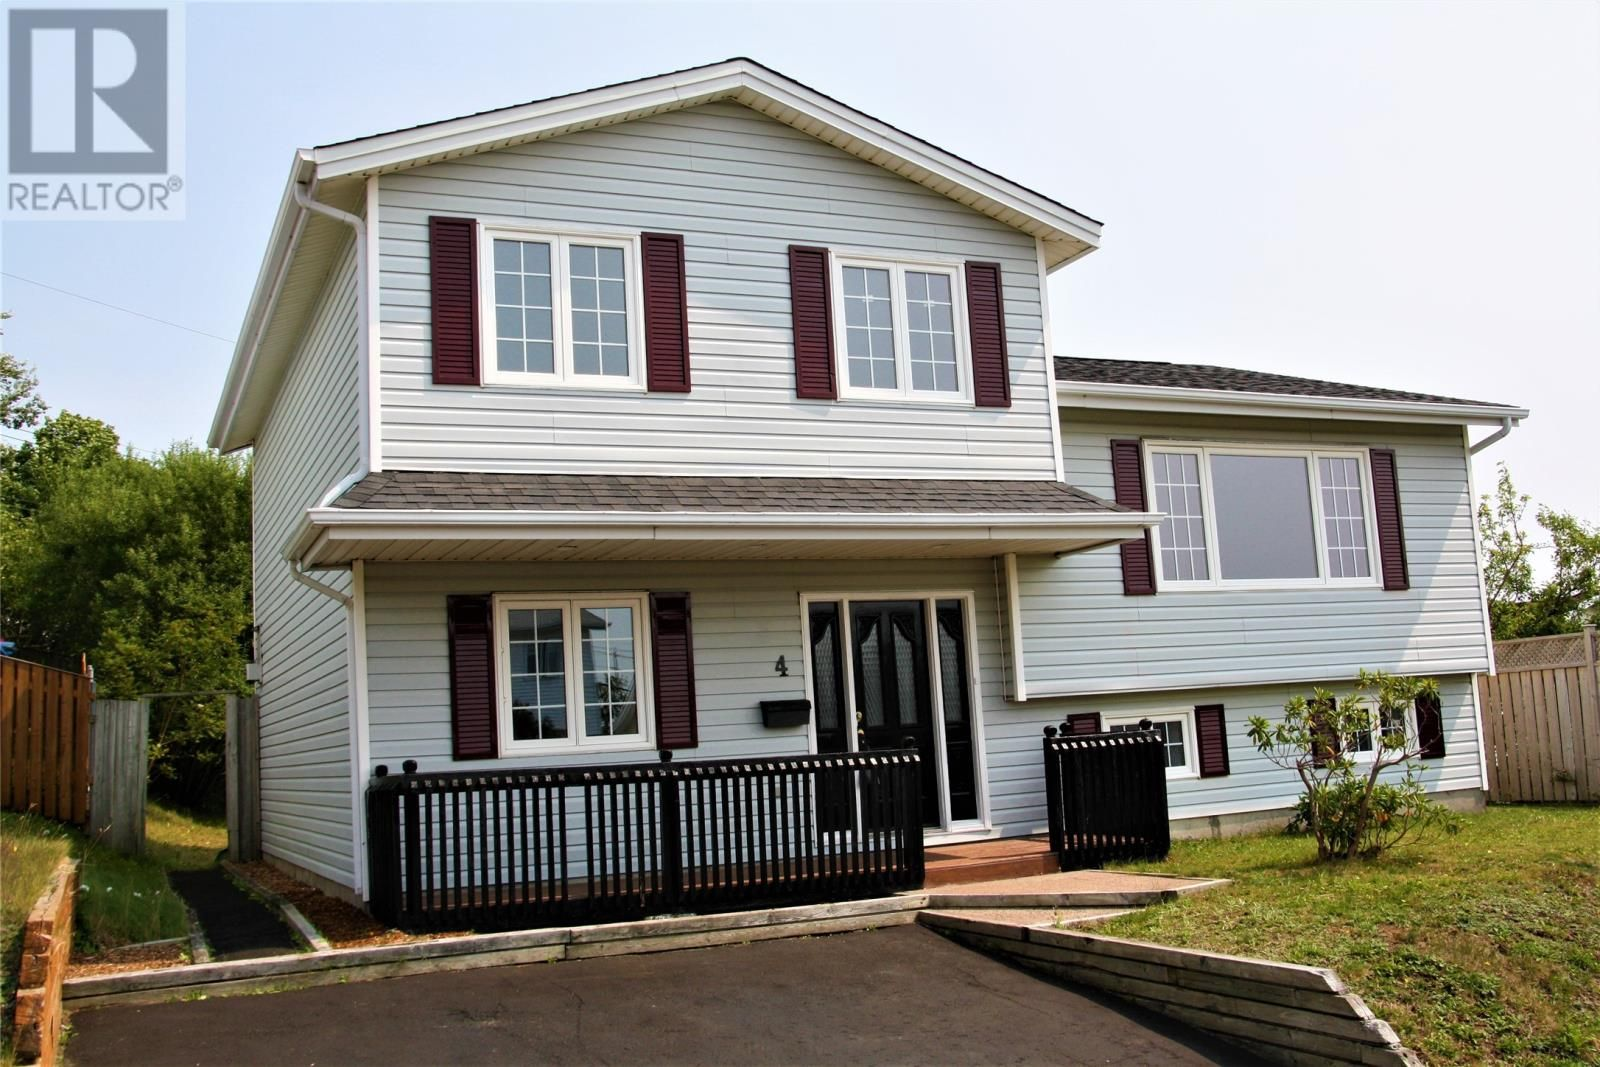 Main Photo: 4 Musgrave Street in St. John's: House for sale : MLS®# 1235895